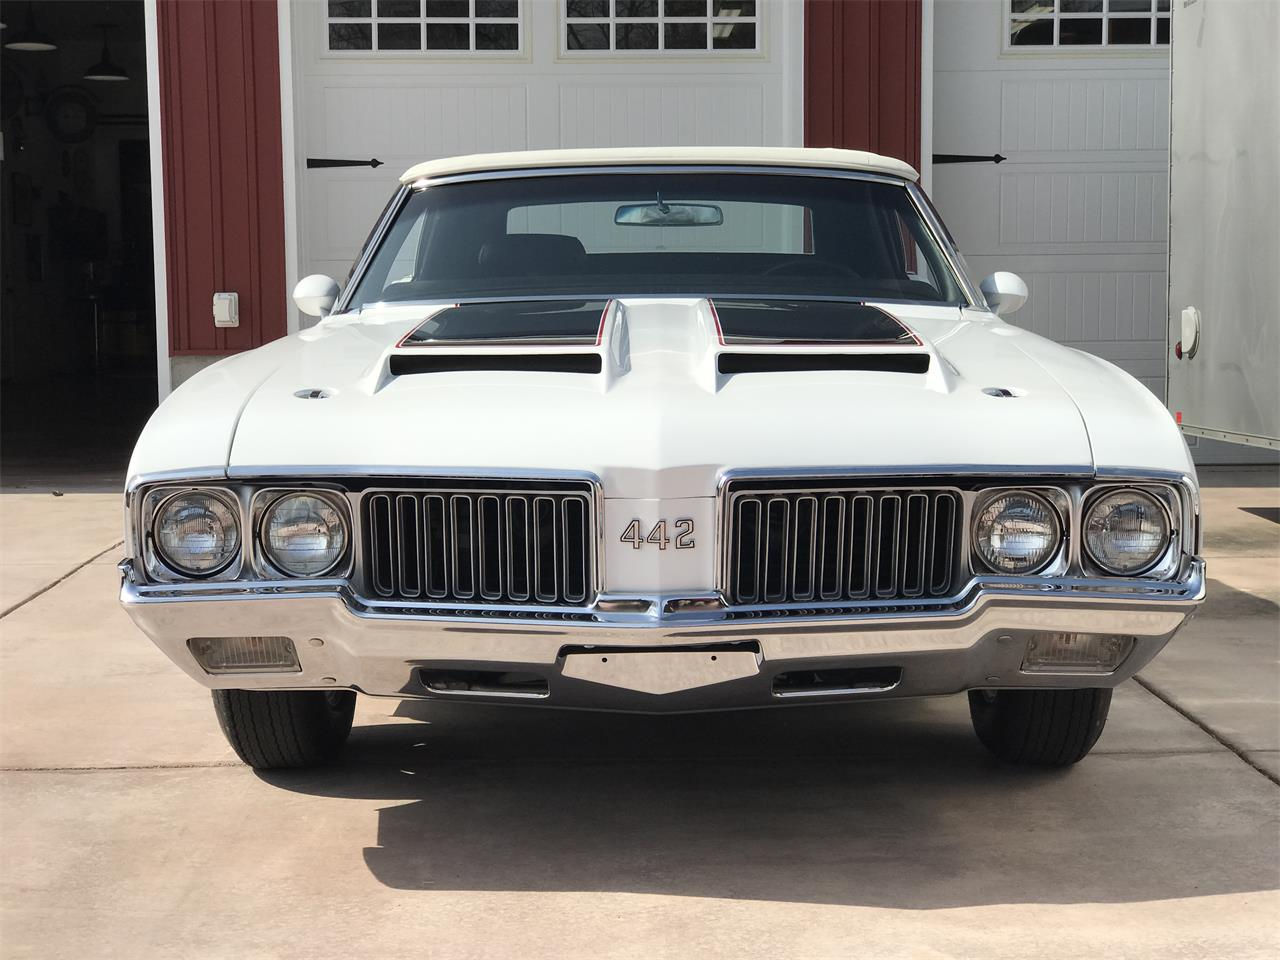 For Sale: 1970 Oldsmobile 442 in Arnold, Missouri